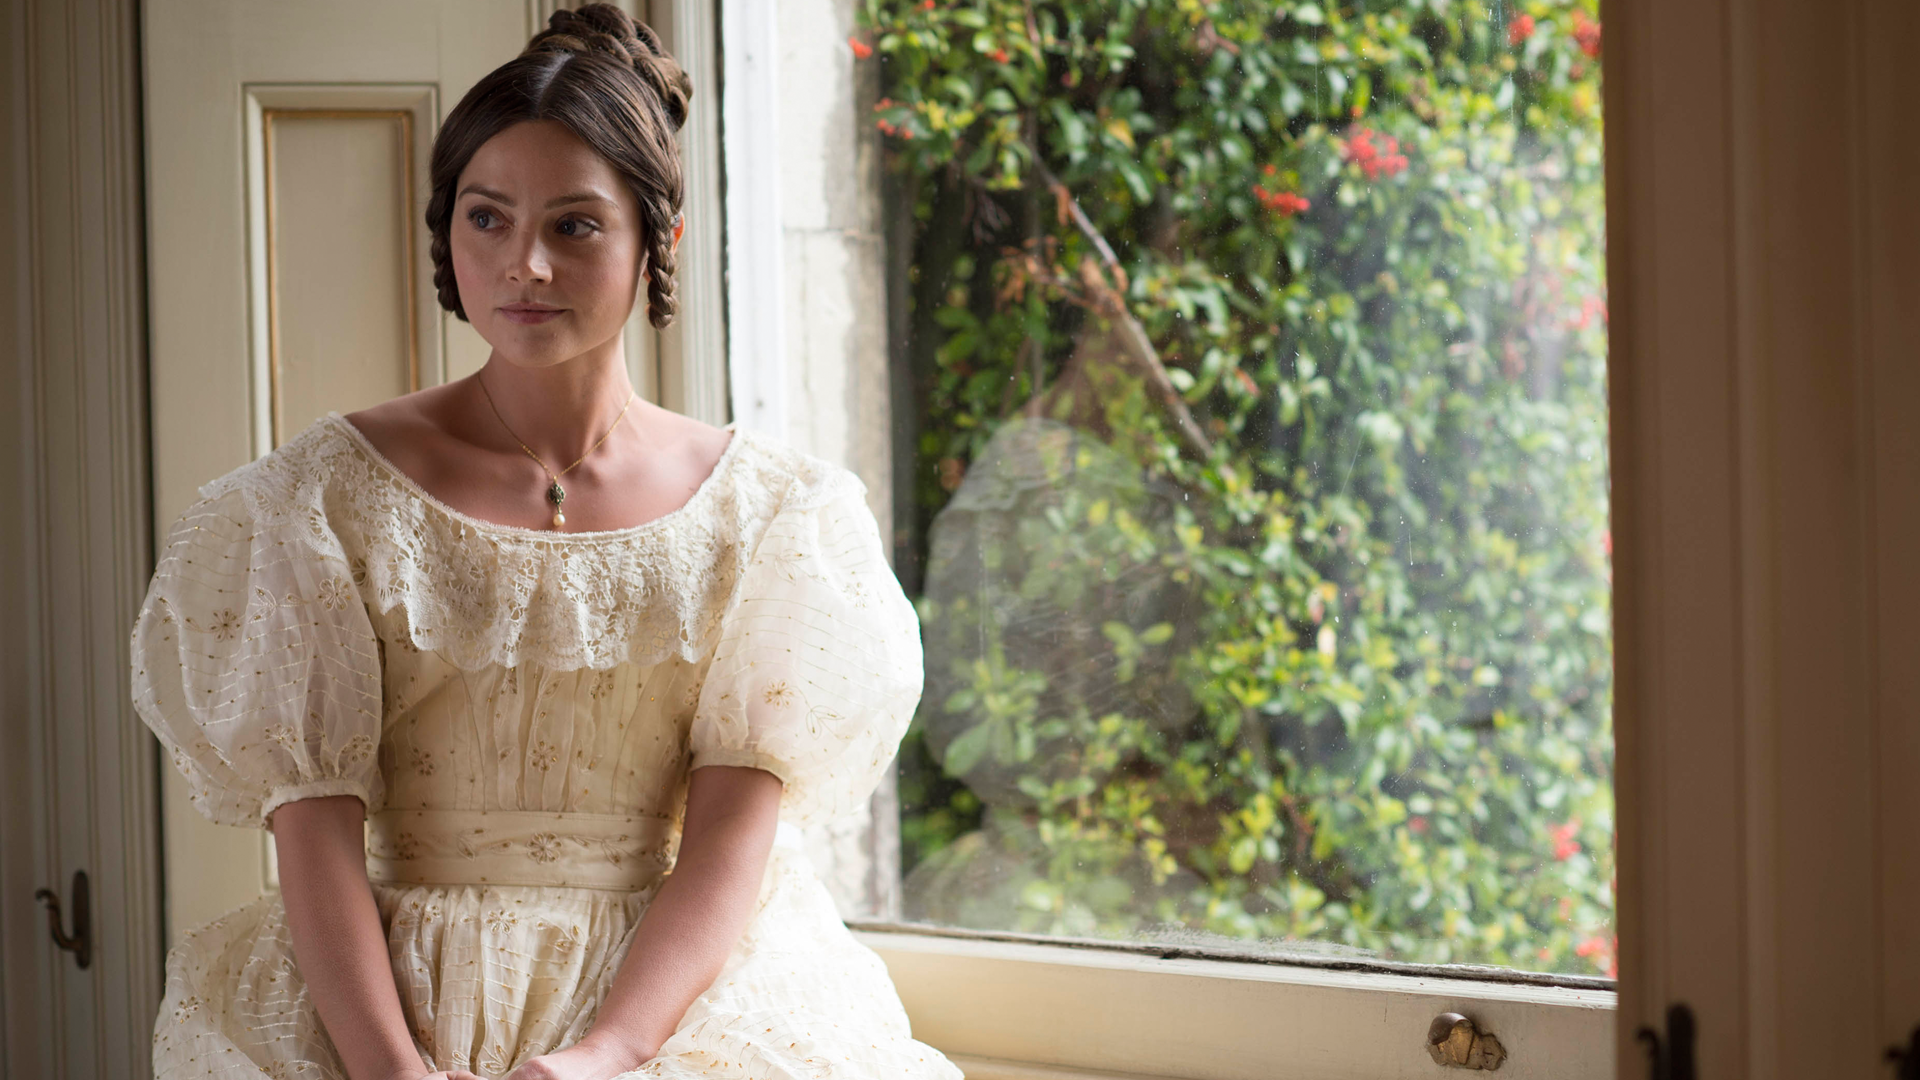 Victoria, Season 1: Everything You Need to Know Before